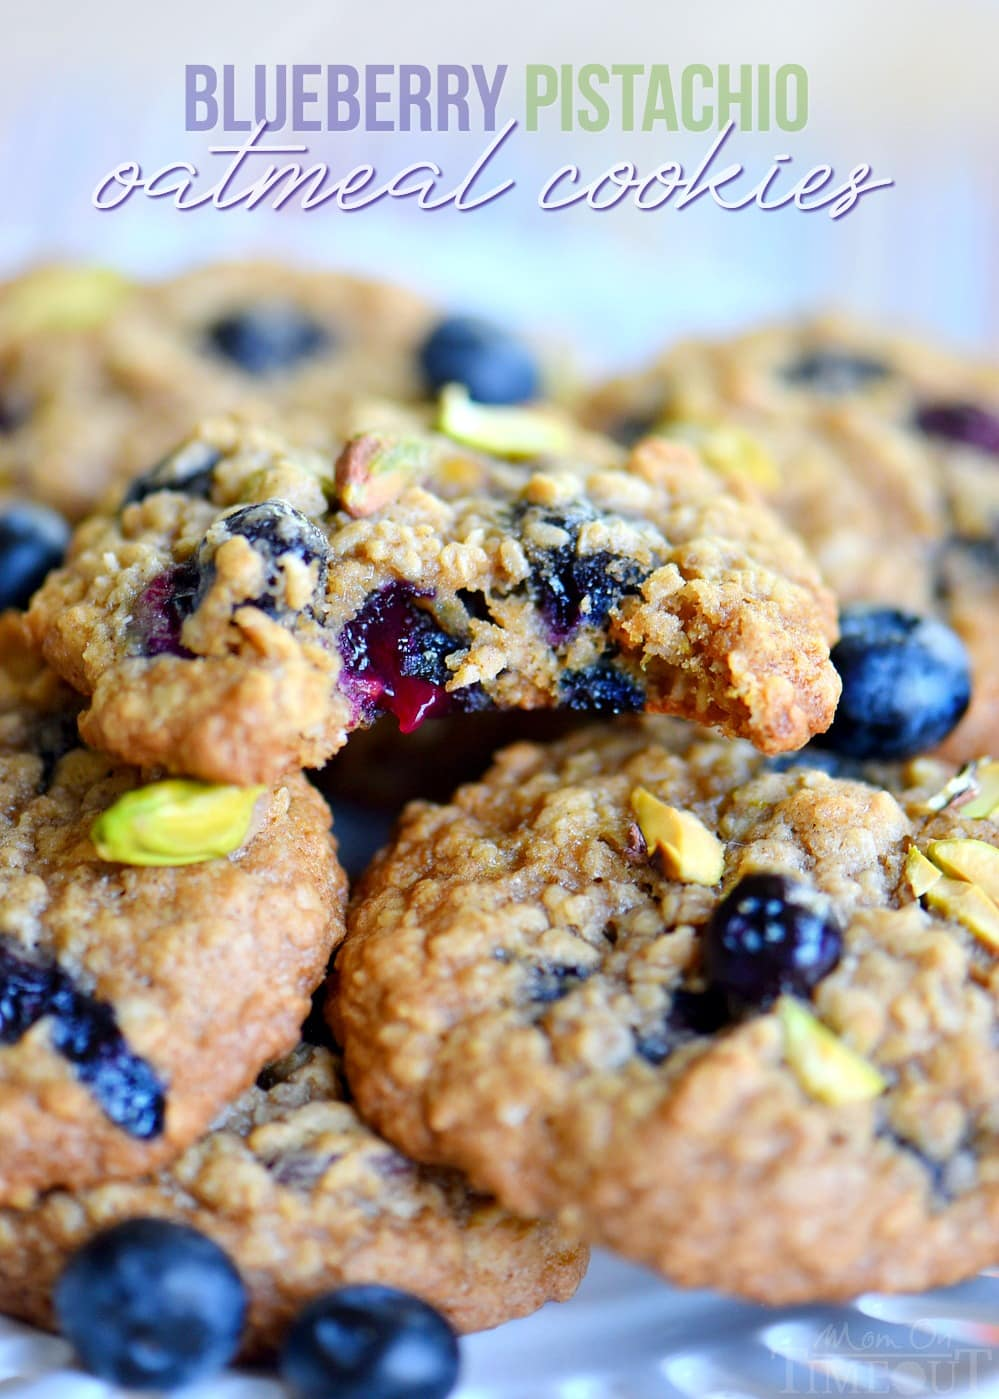 blueberry-pistachio-oatmeal-cookies-title